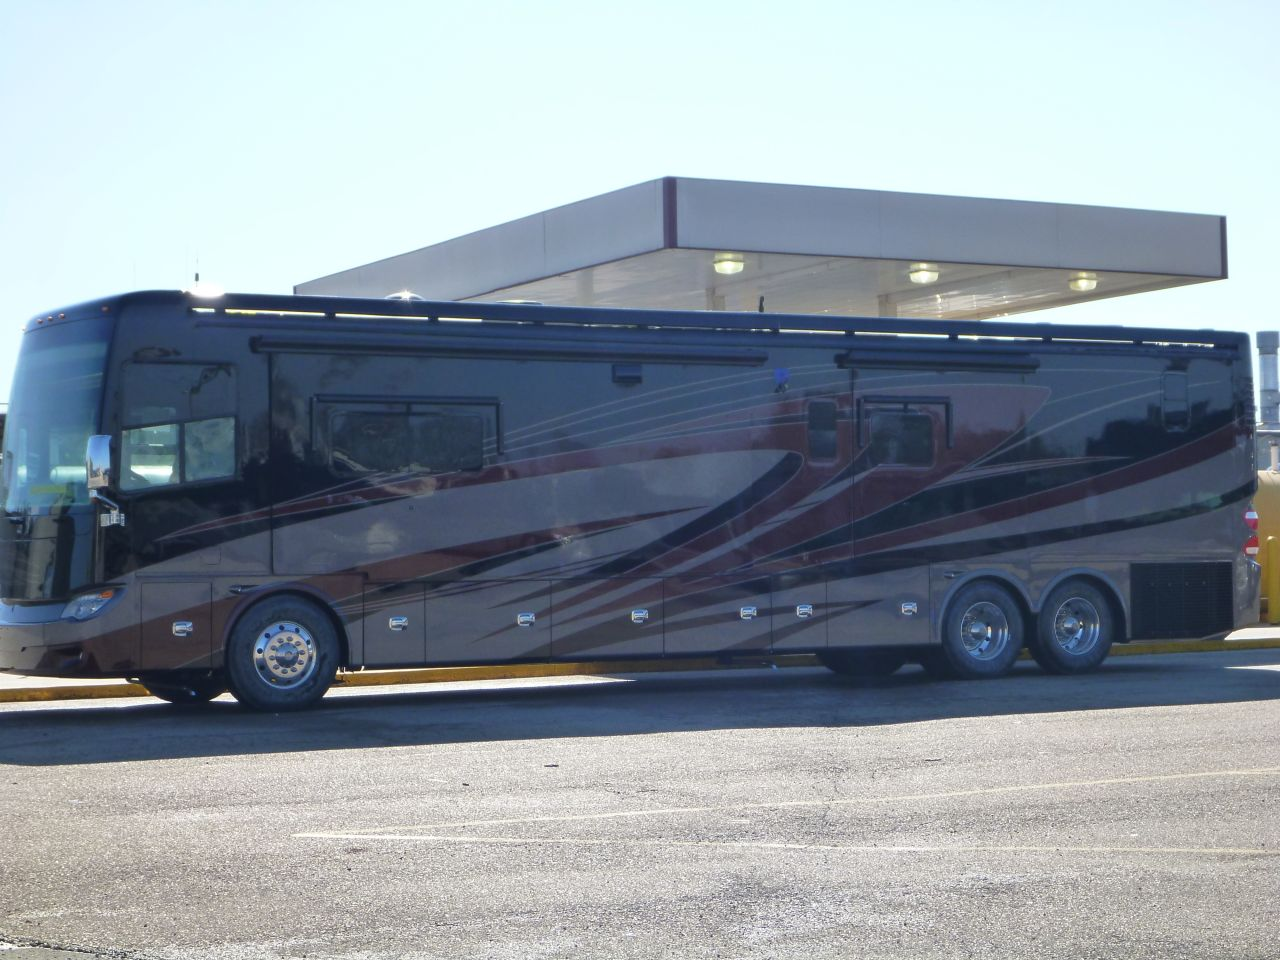 The Coach Looks Different In Non-Direct Sunlight